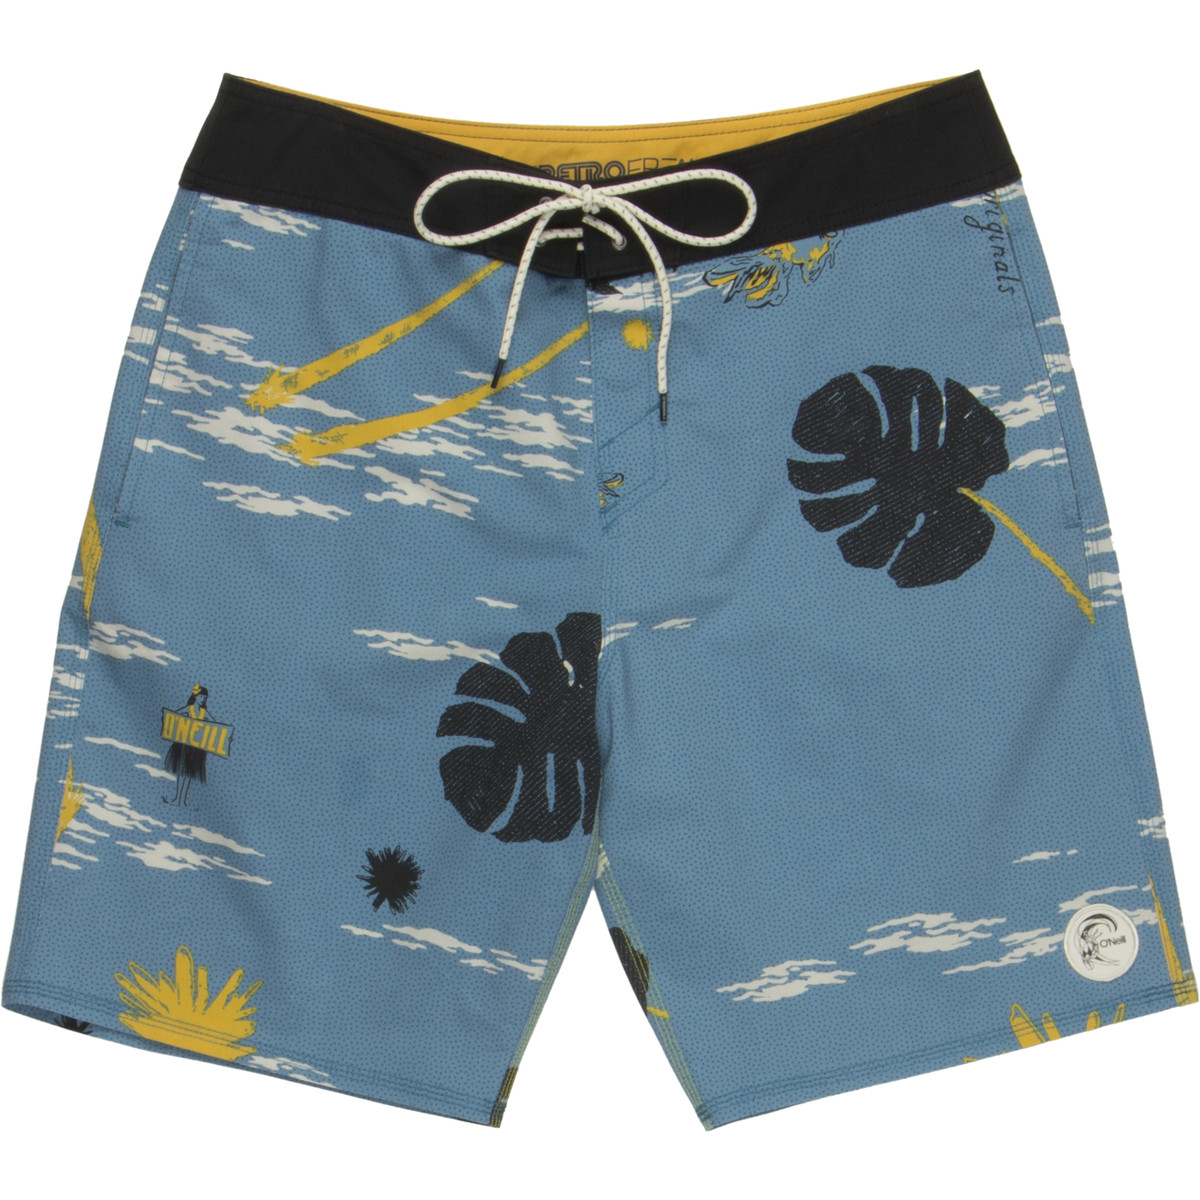 O'Neill Vibed Out Board Short